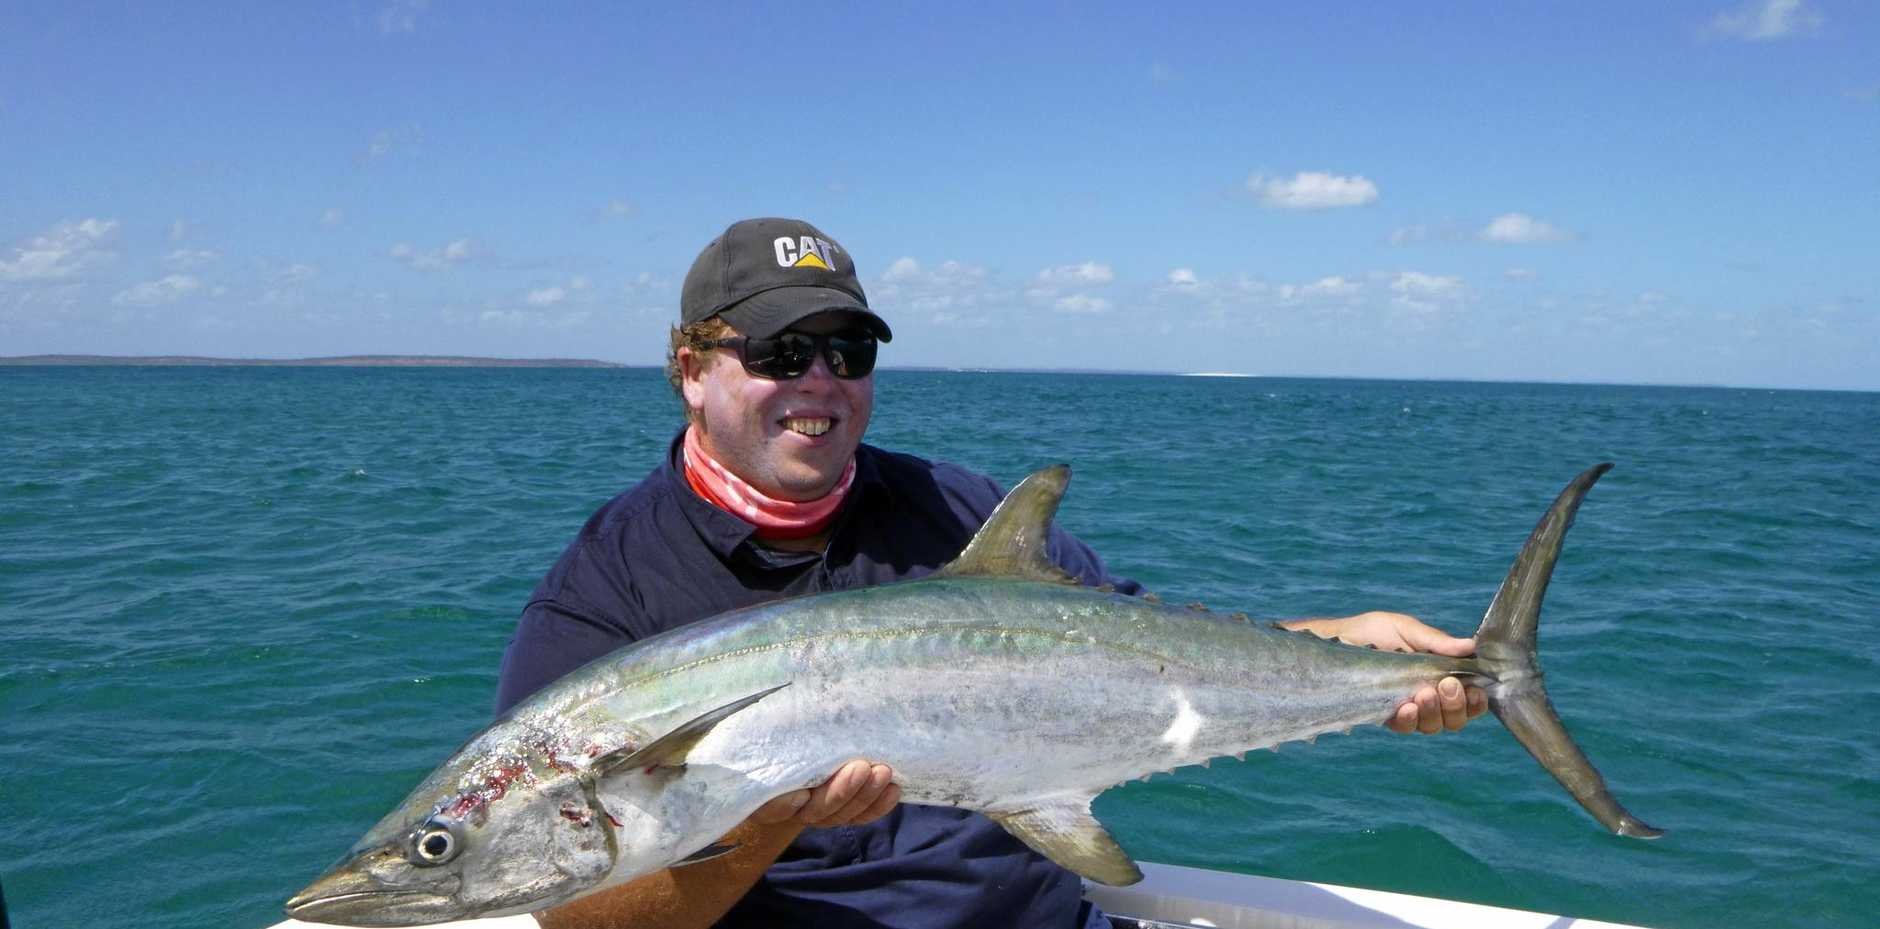 Matt from Brisbane landed this solid broadbar mackerel while out on a charter trip with Hervey Bay Fly and Sportfishing recently.